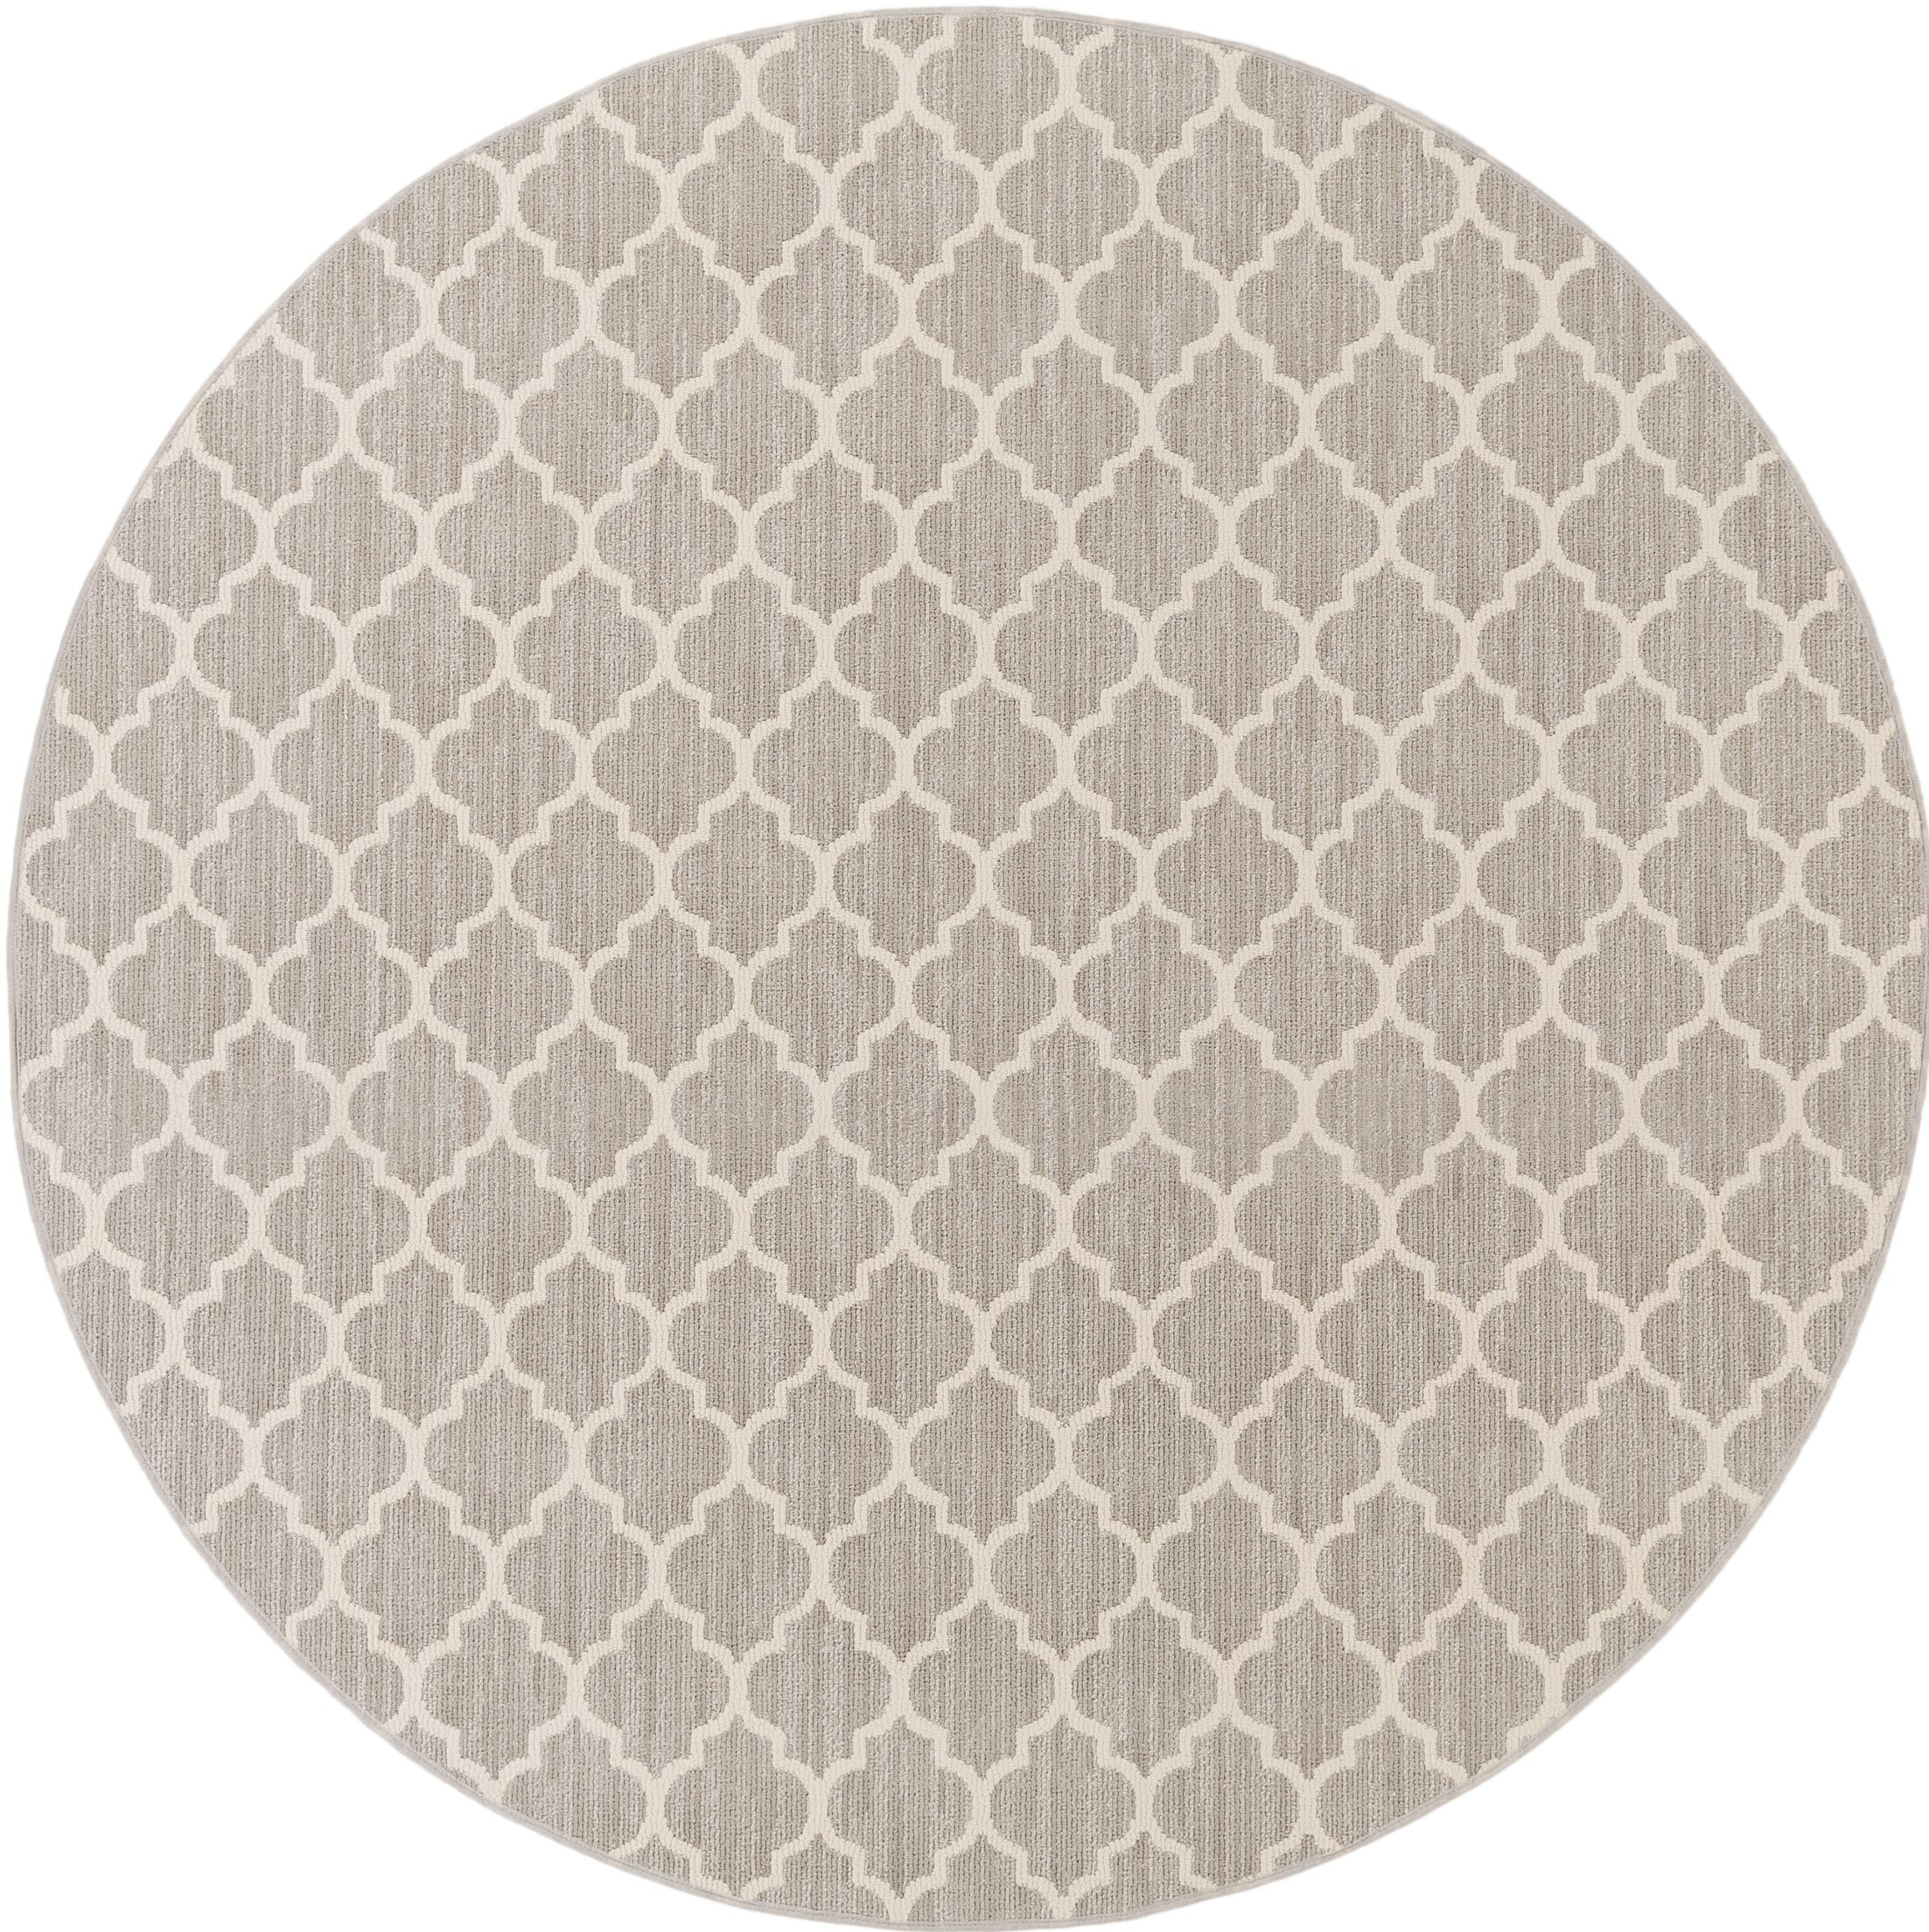 Central Volusia Gray Area Rug Rug Size: Round 6'